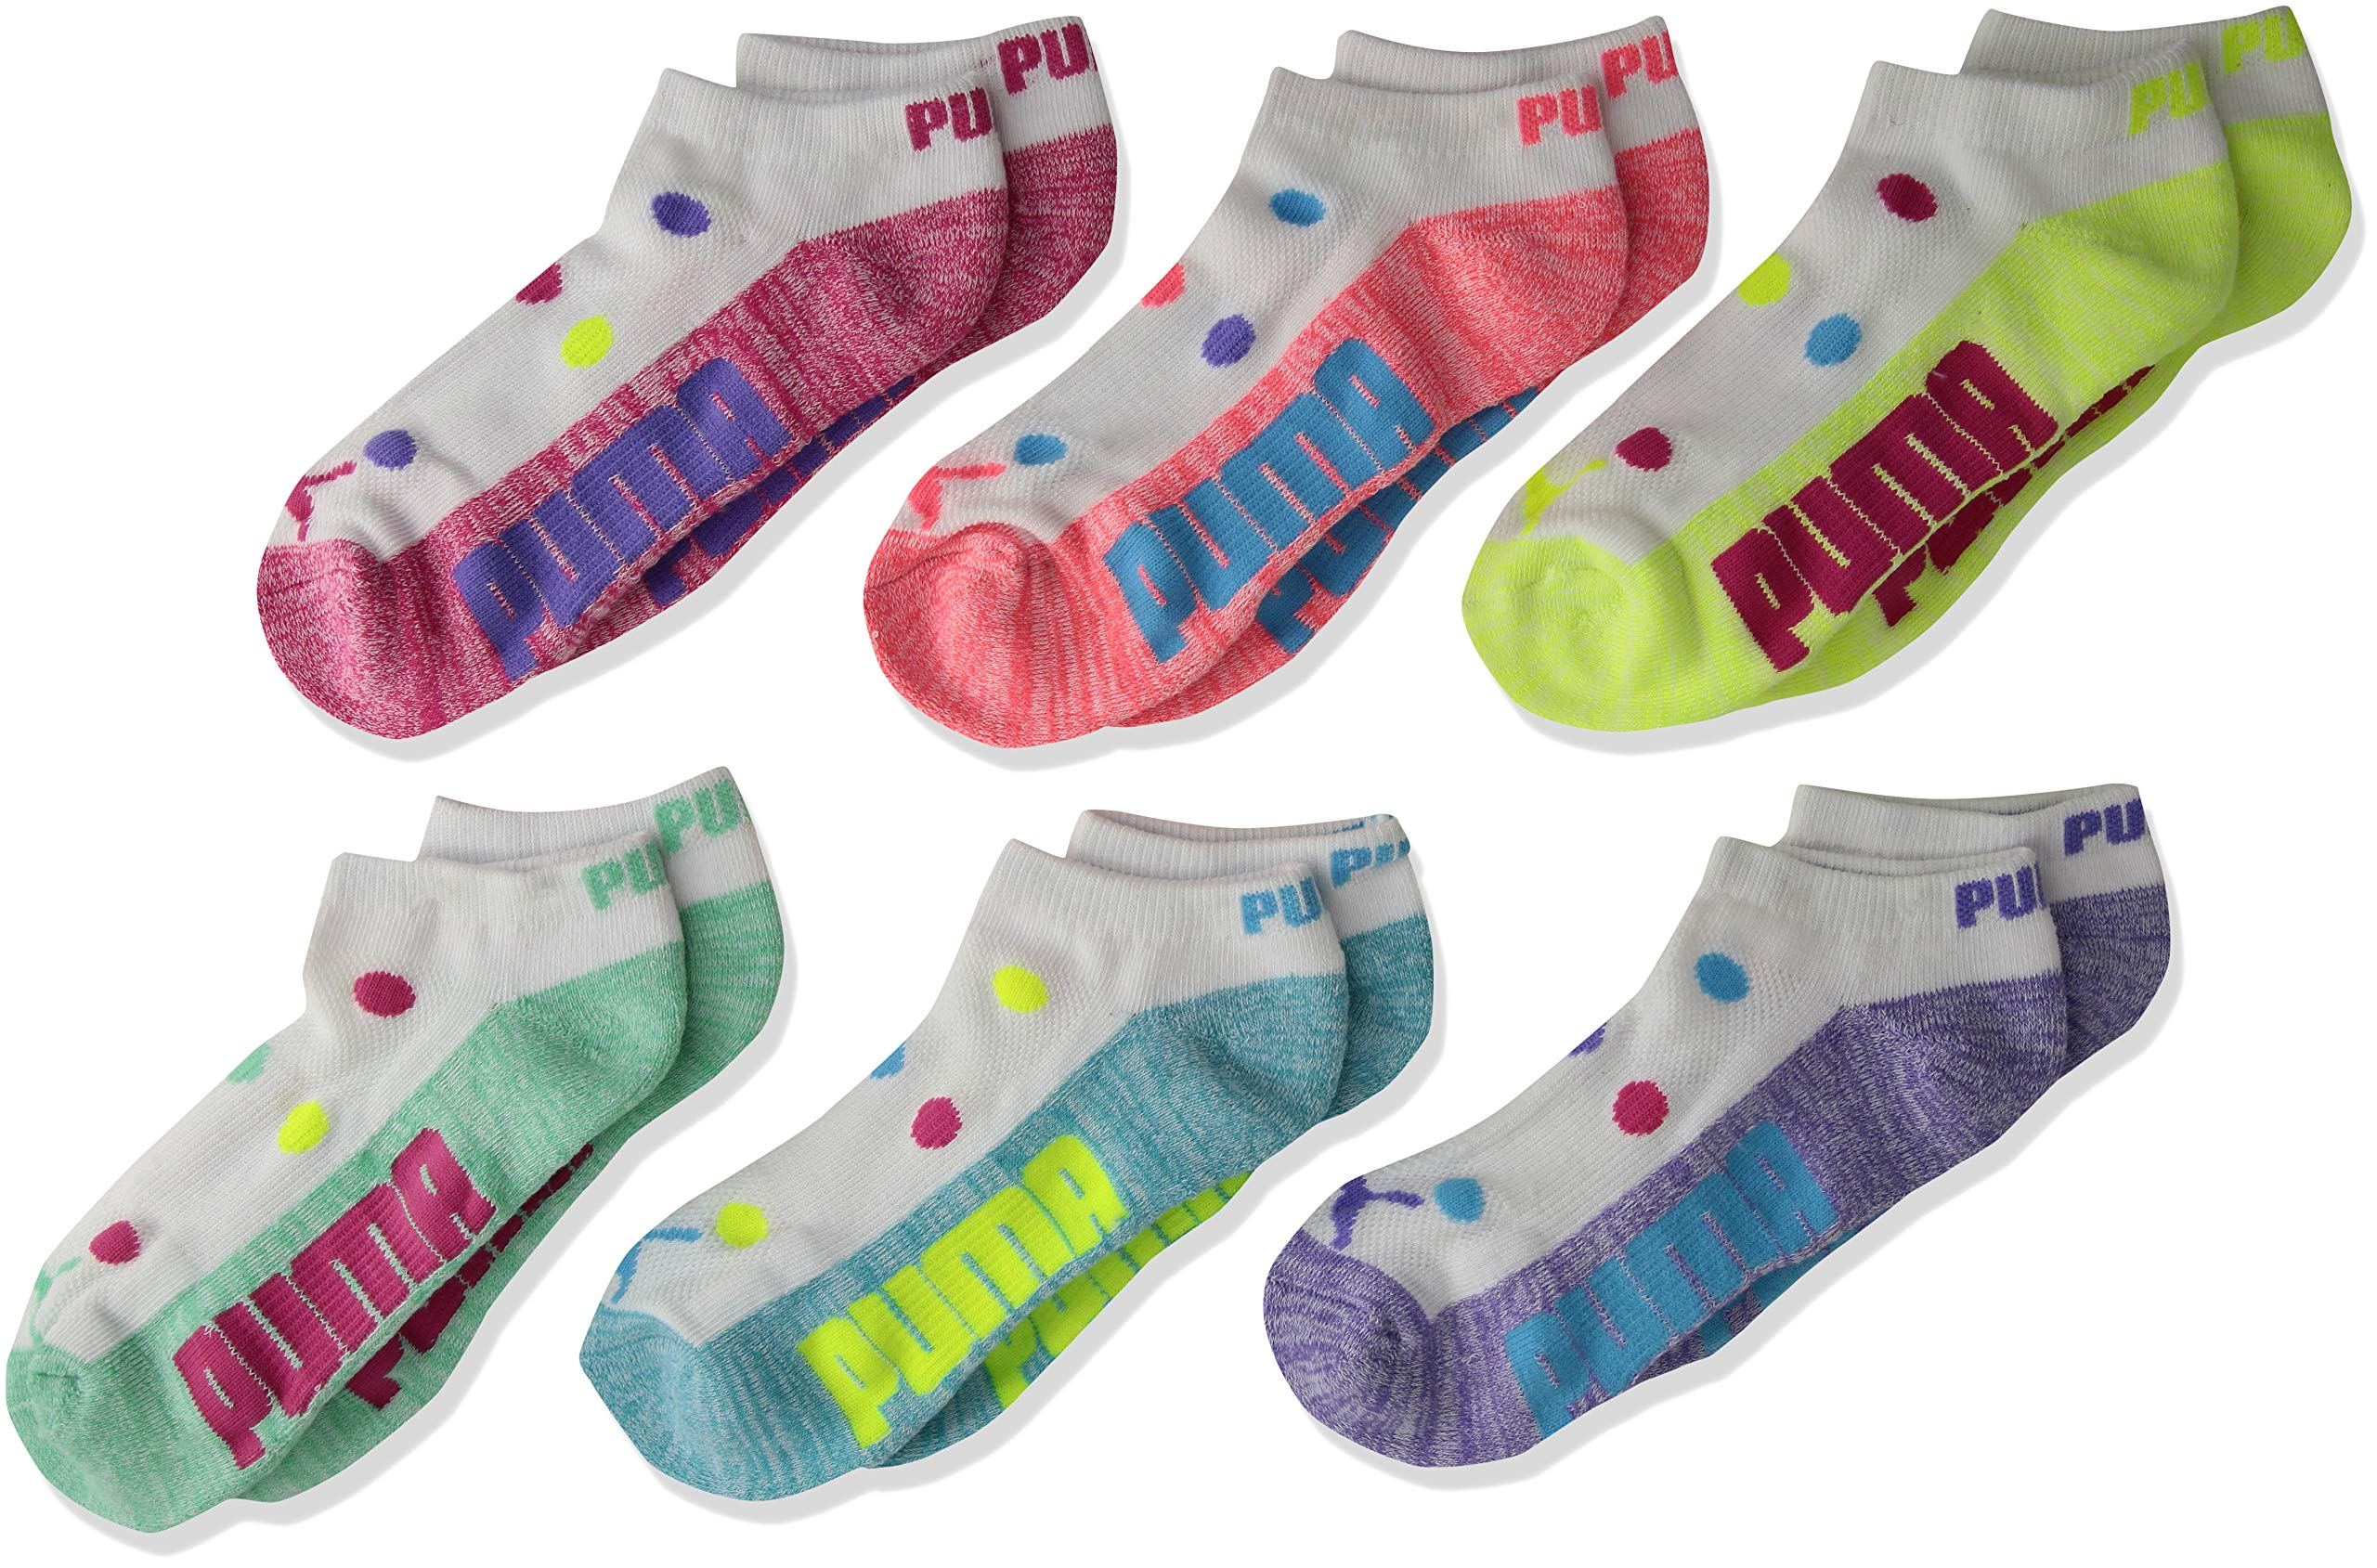 PUMA Big Girls' 6 Pack Low Cut Socks, Bright Combo, 9-11 by PUMA